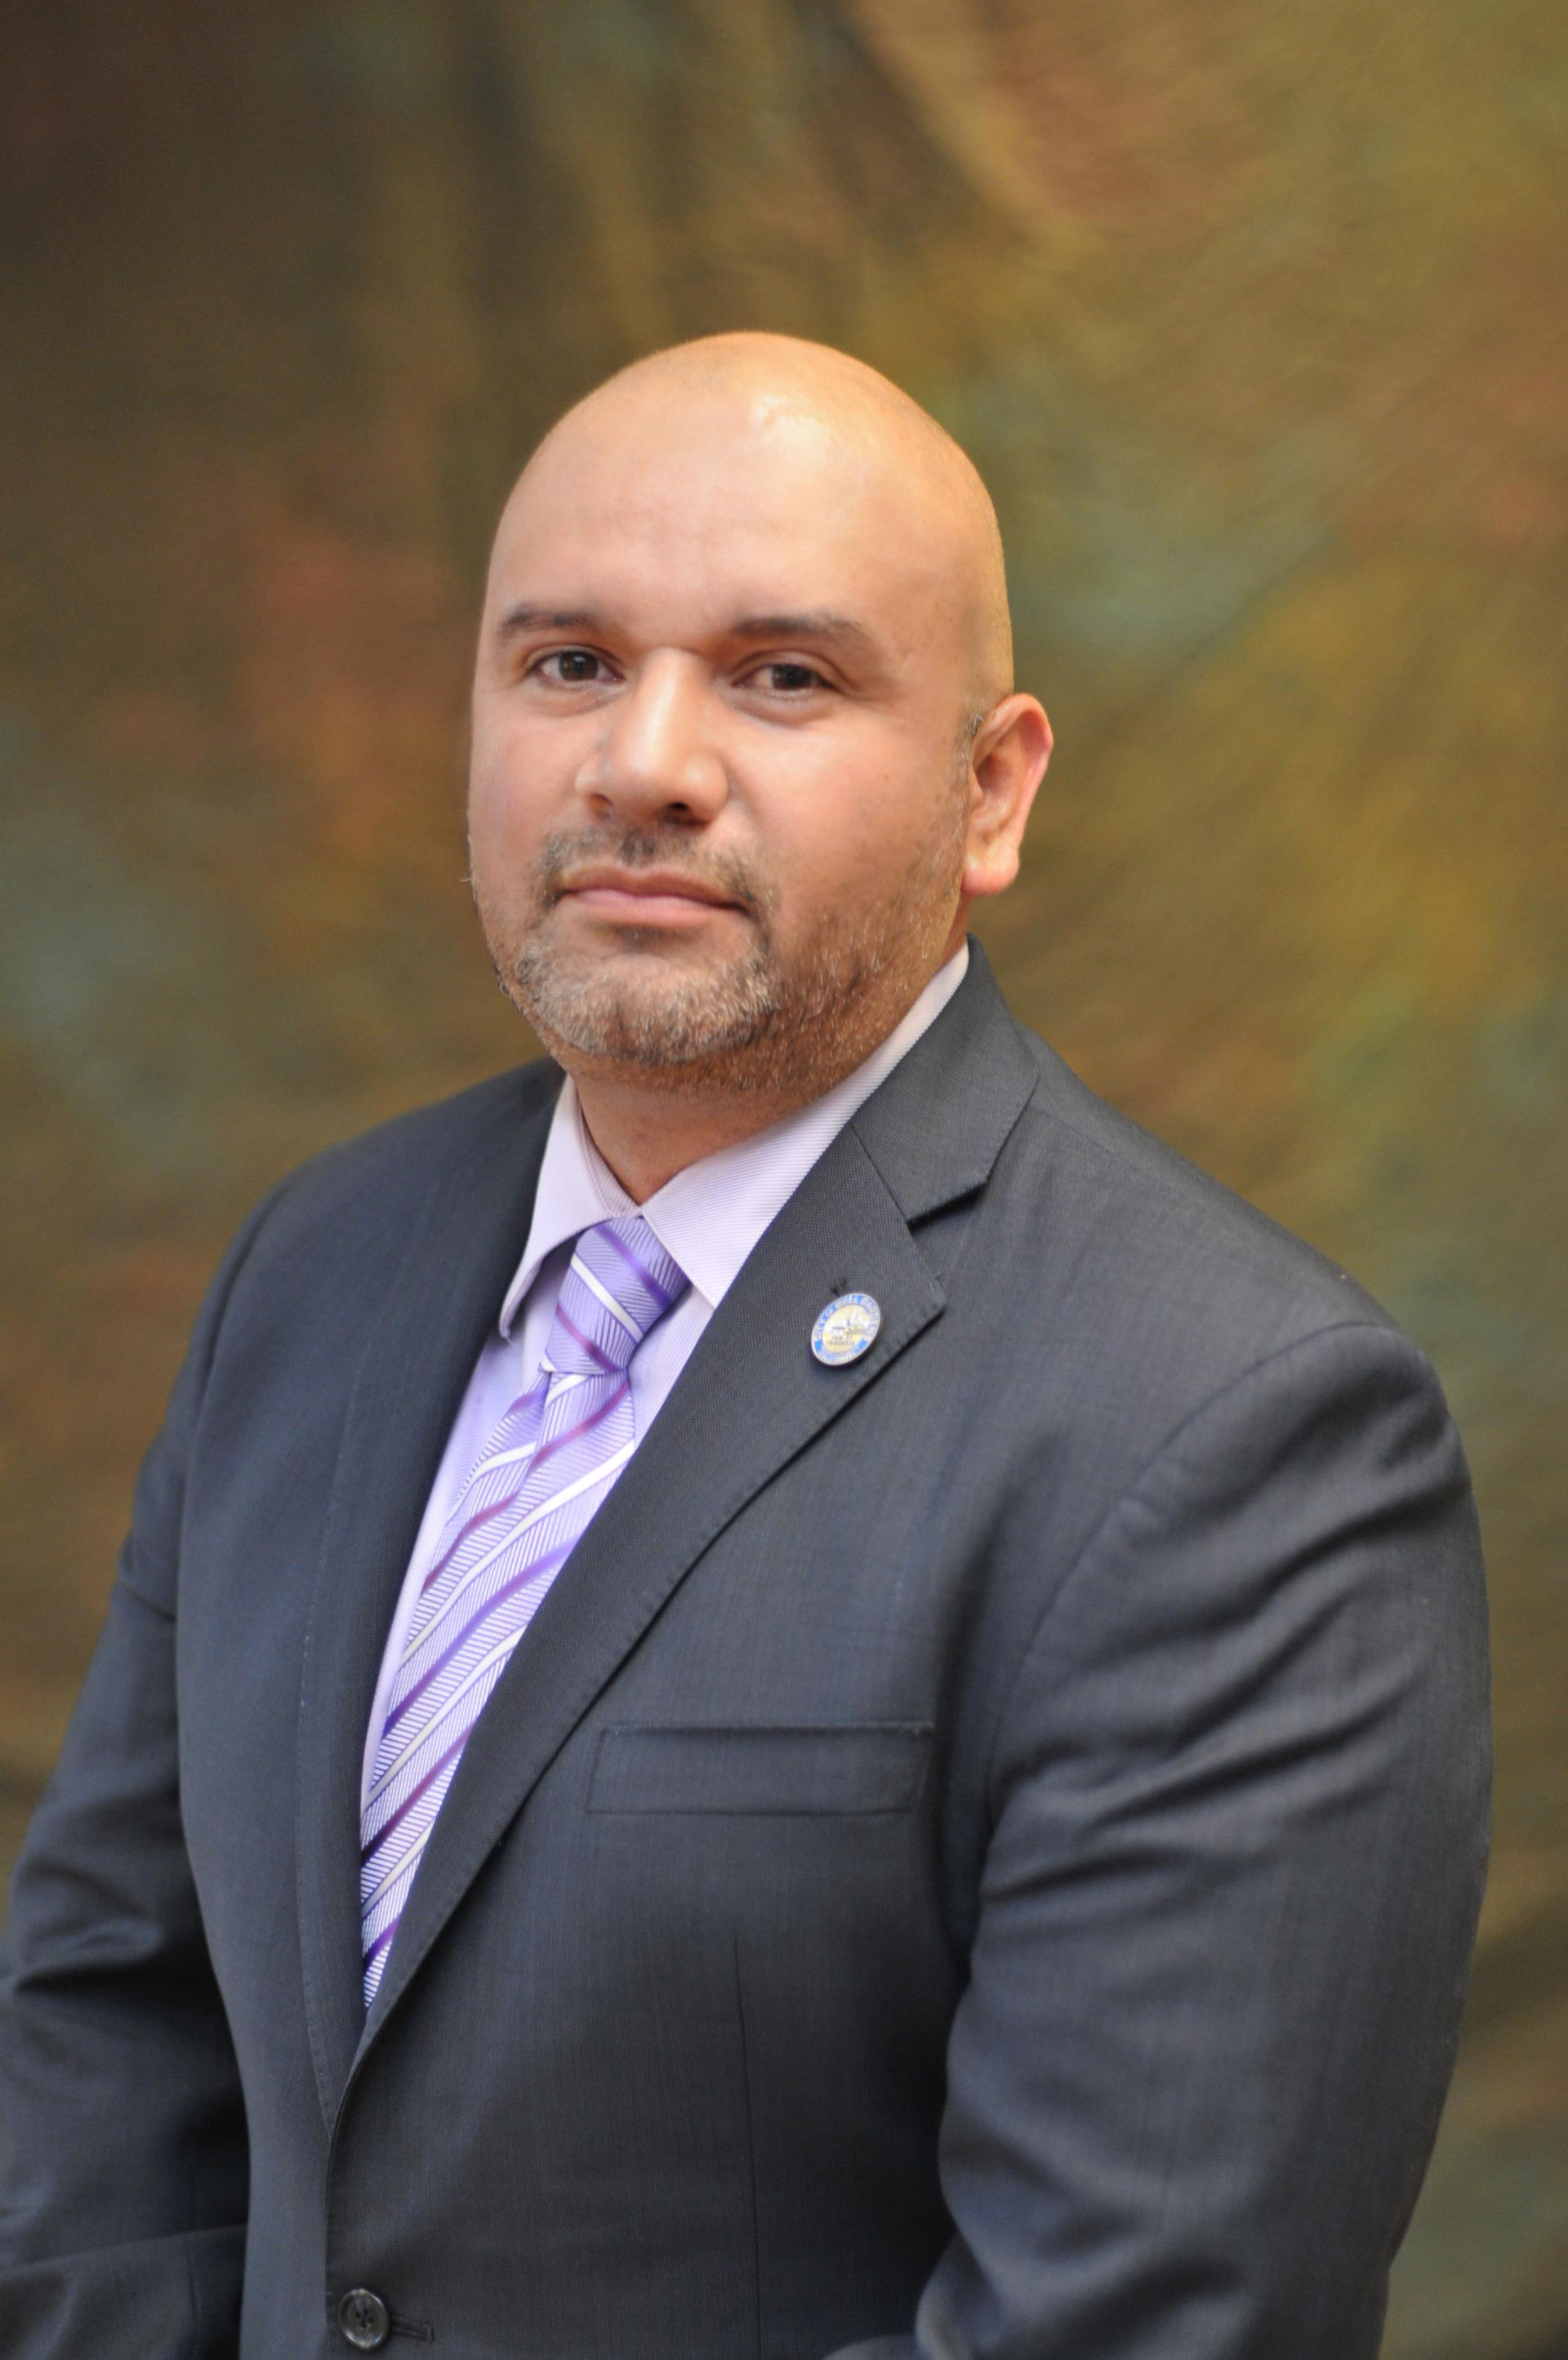 Council Member Pedro Aceituno